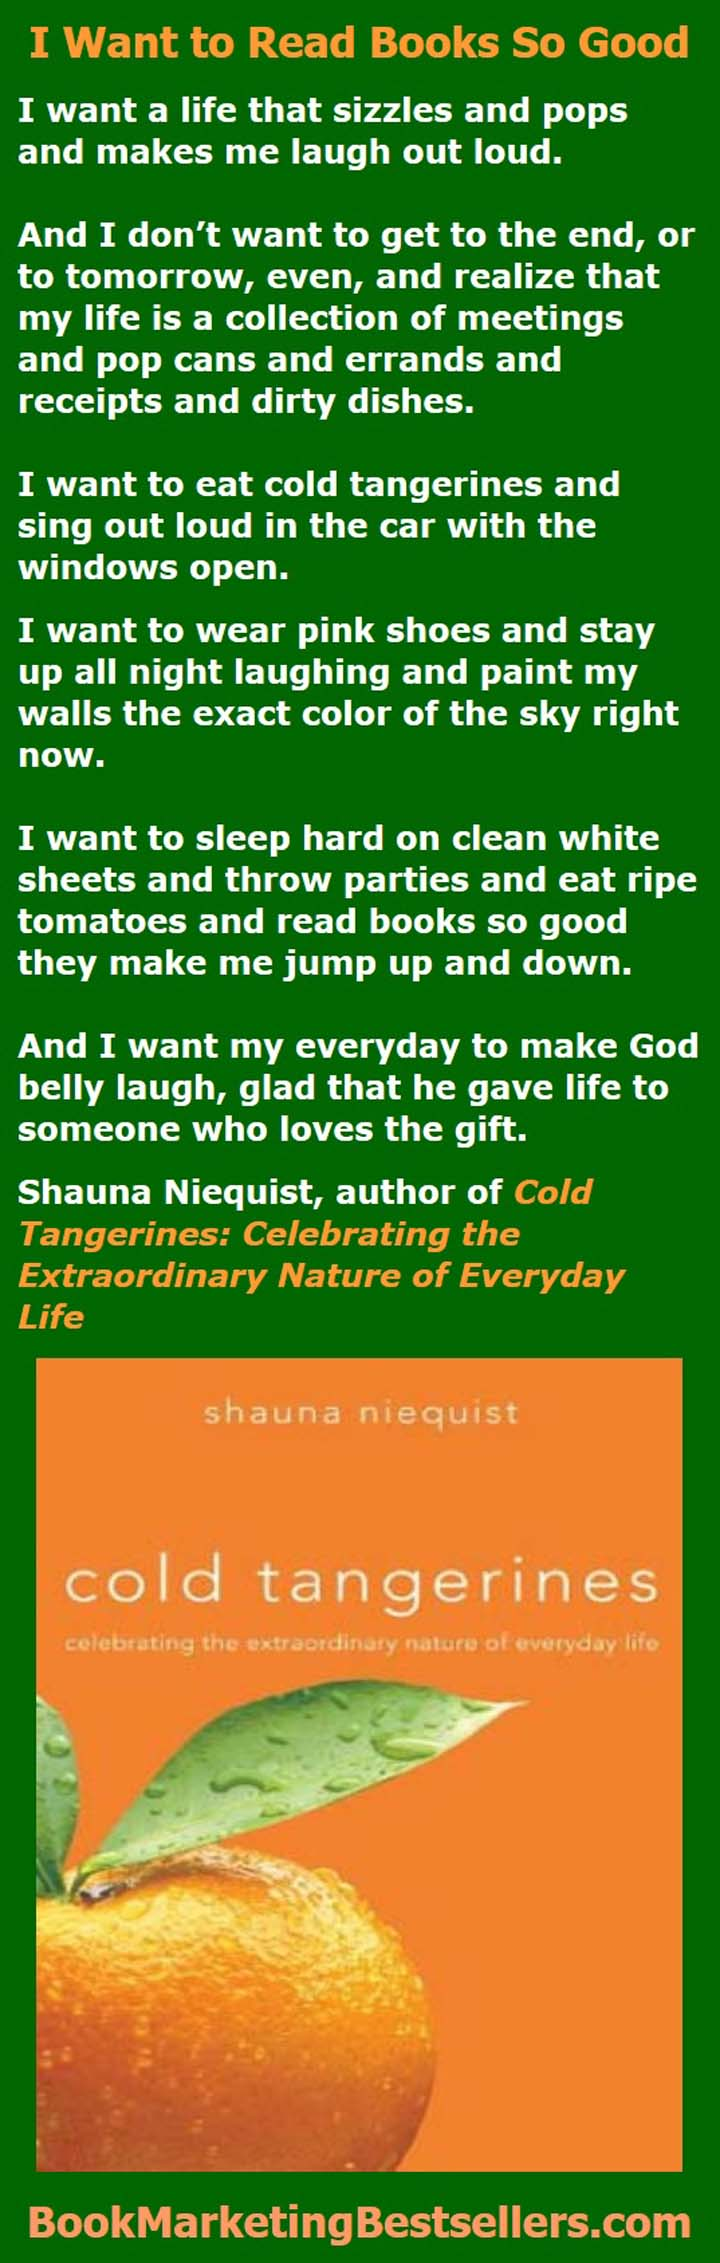 Shauna Niequist's Cold Tangerines